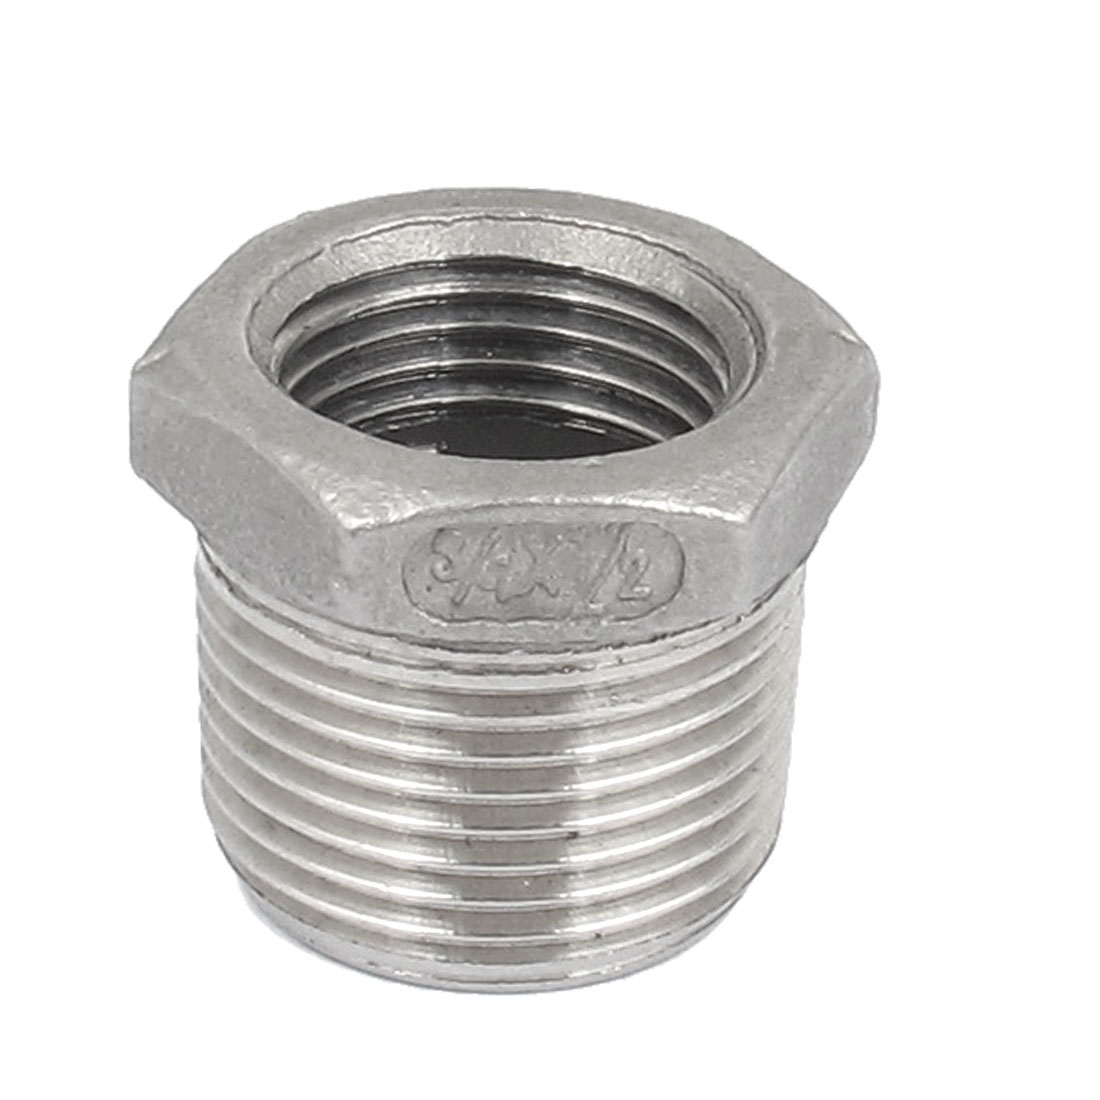 3/4 BSP Male to 1/2 BSP Female Thread Octagon Head Bushing Fitting for Pipeline